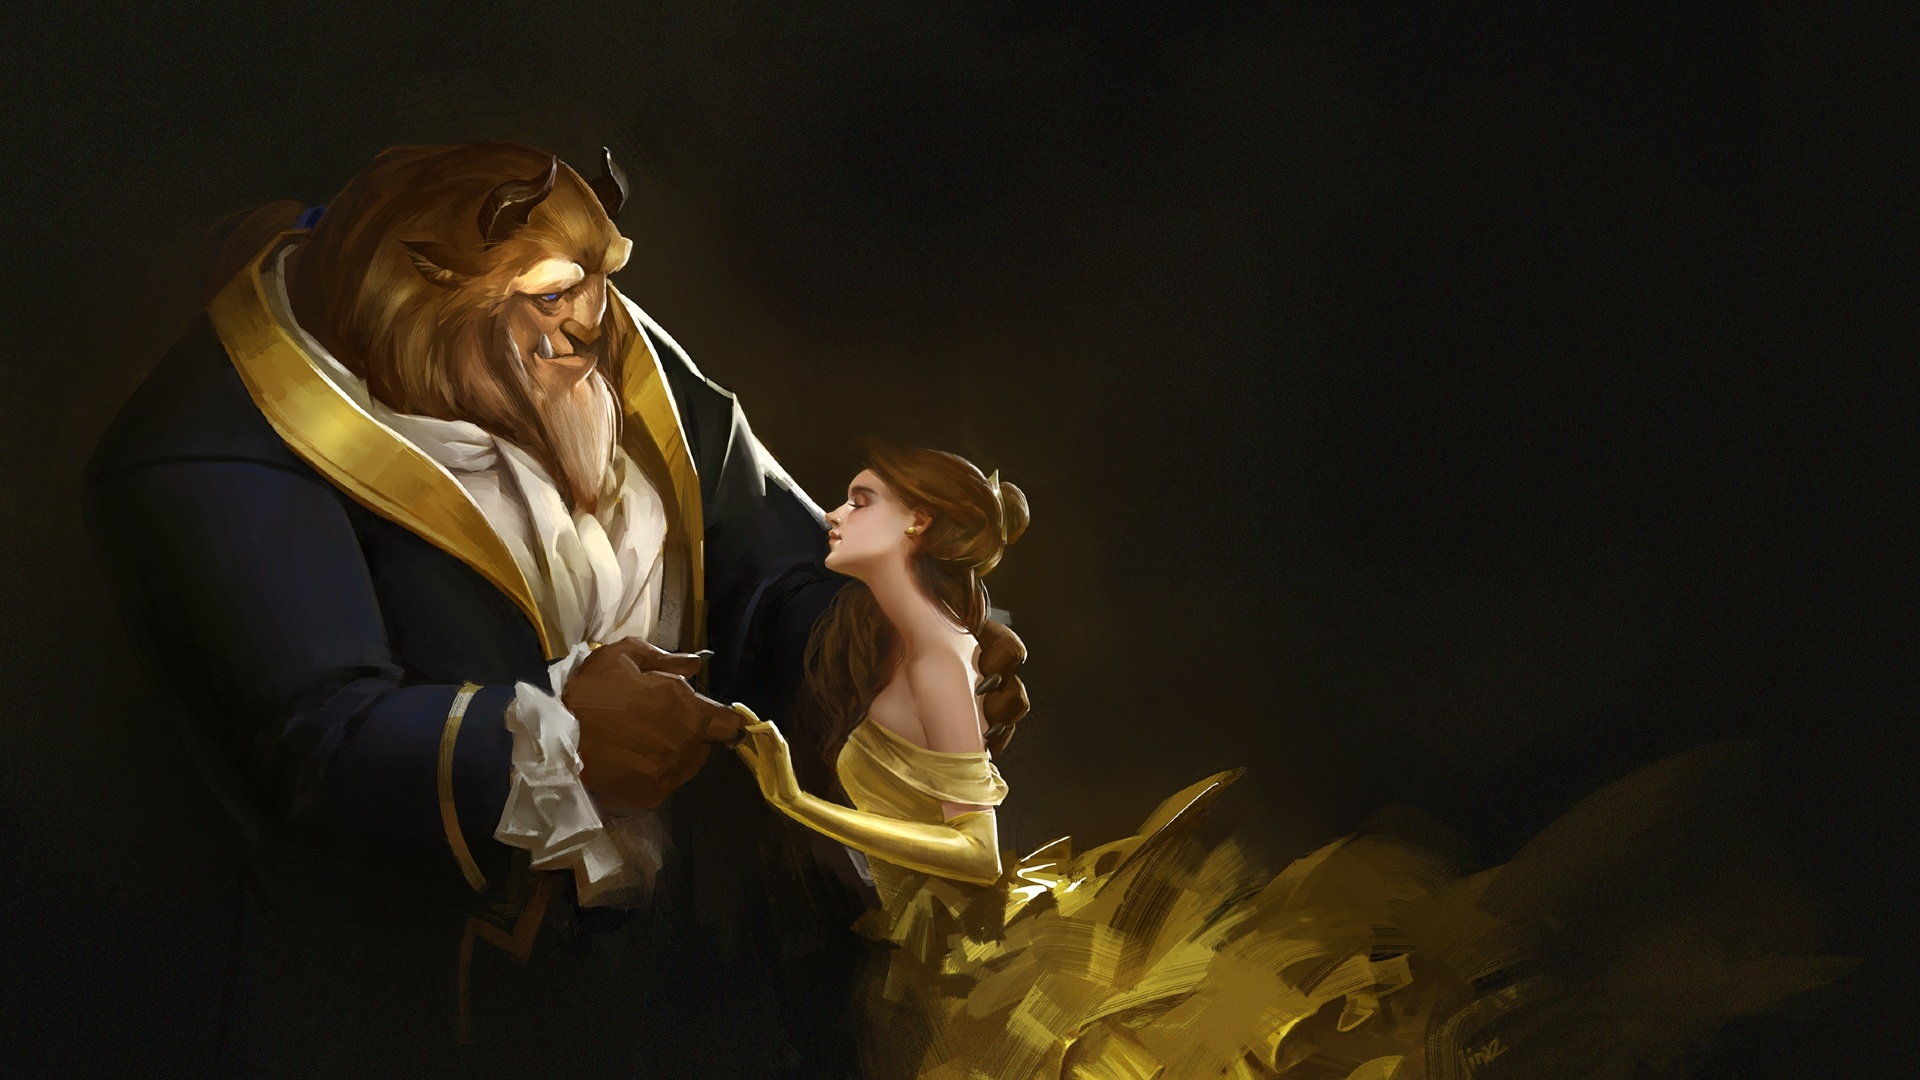 1920x1080 Beauty And The Beast Artwork 1080p Laptop Full Hd